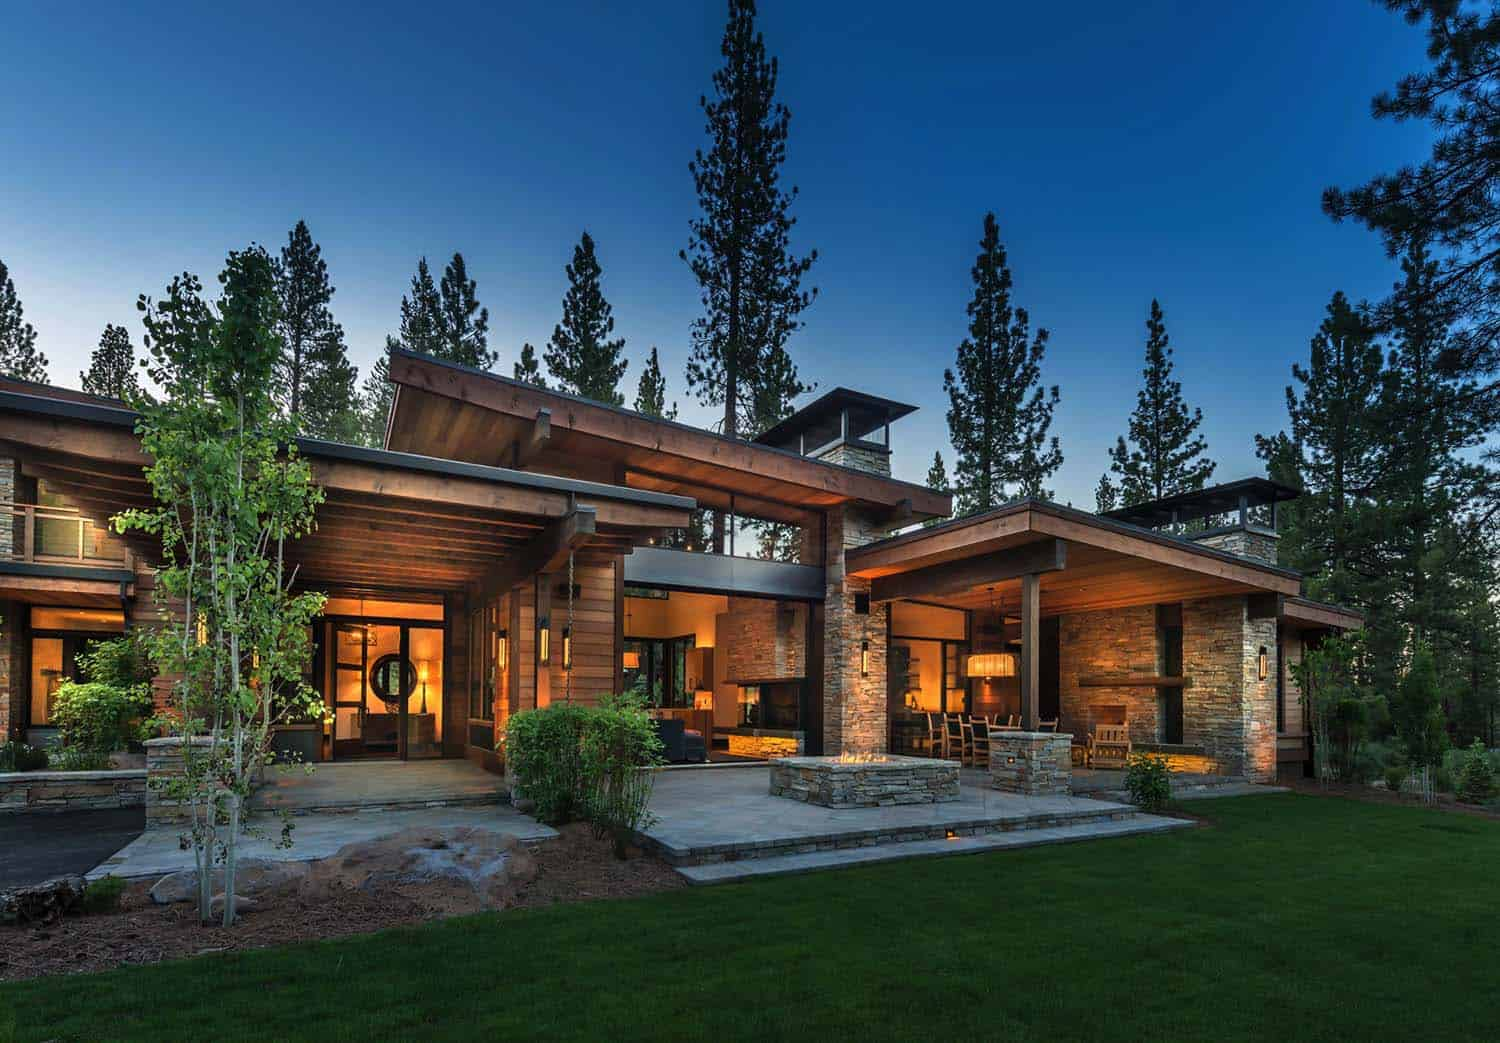 Mountain-Modern-Home-Ryan-Group-Architects-02-1-Kindesign.jpg